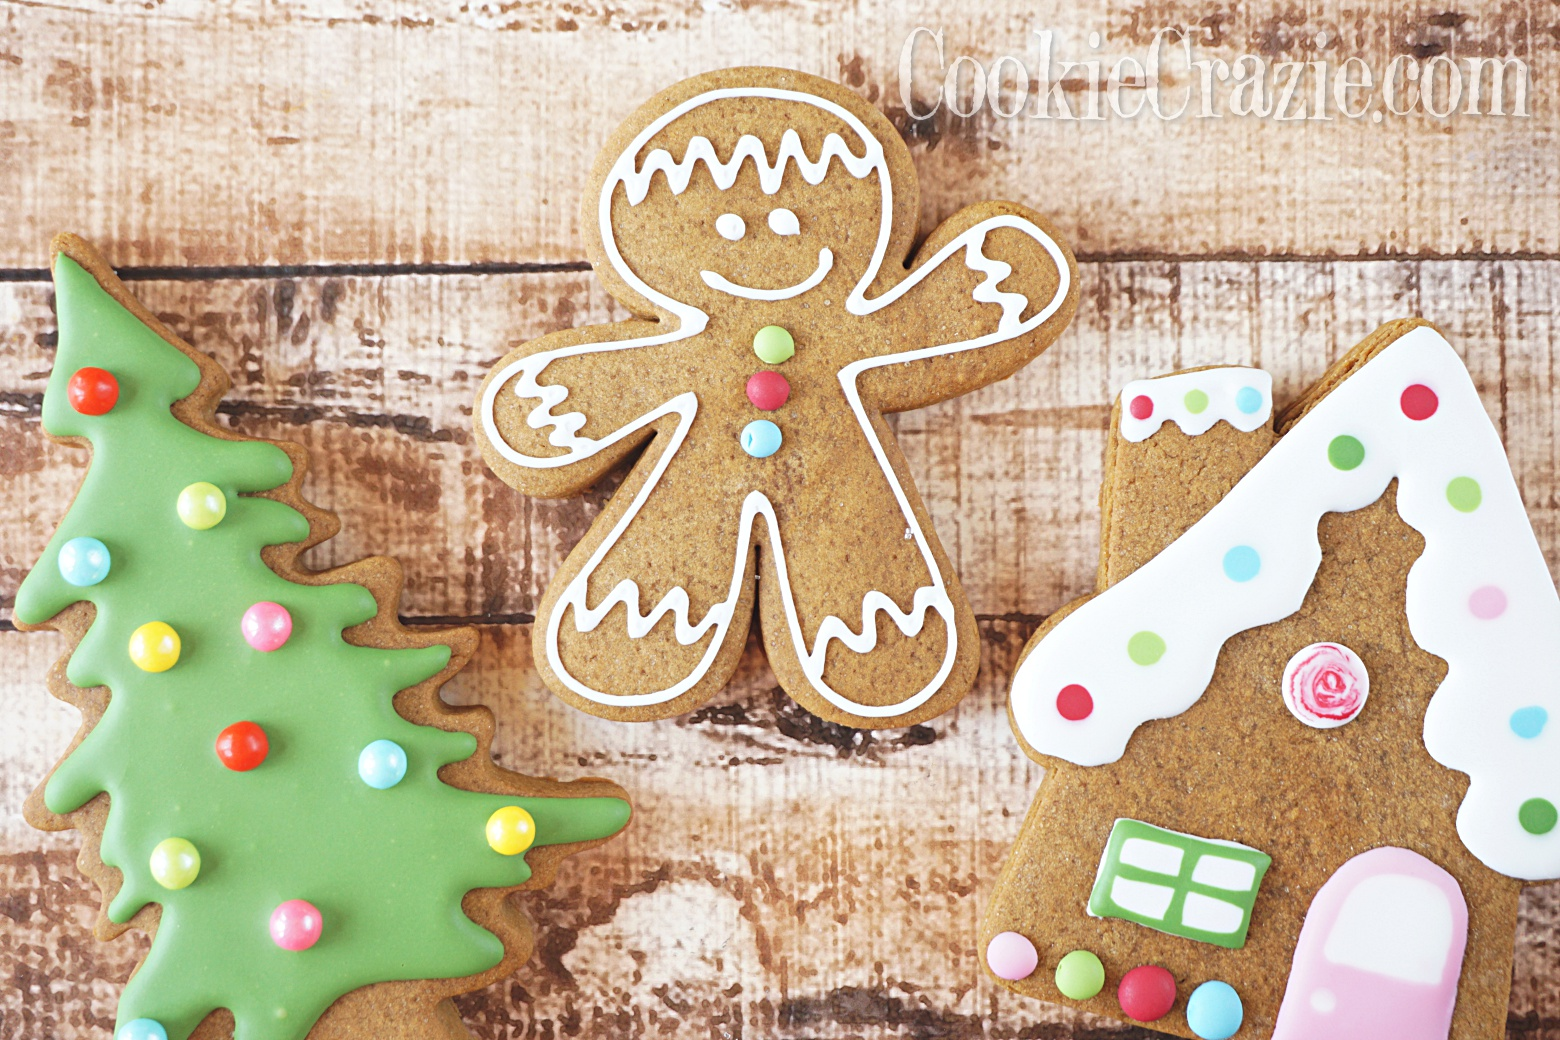 Gingerbread Man Decorated Sugar Cookie YouTube video  HERE